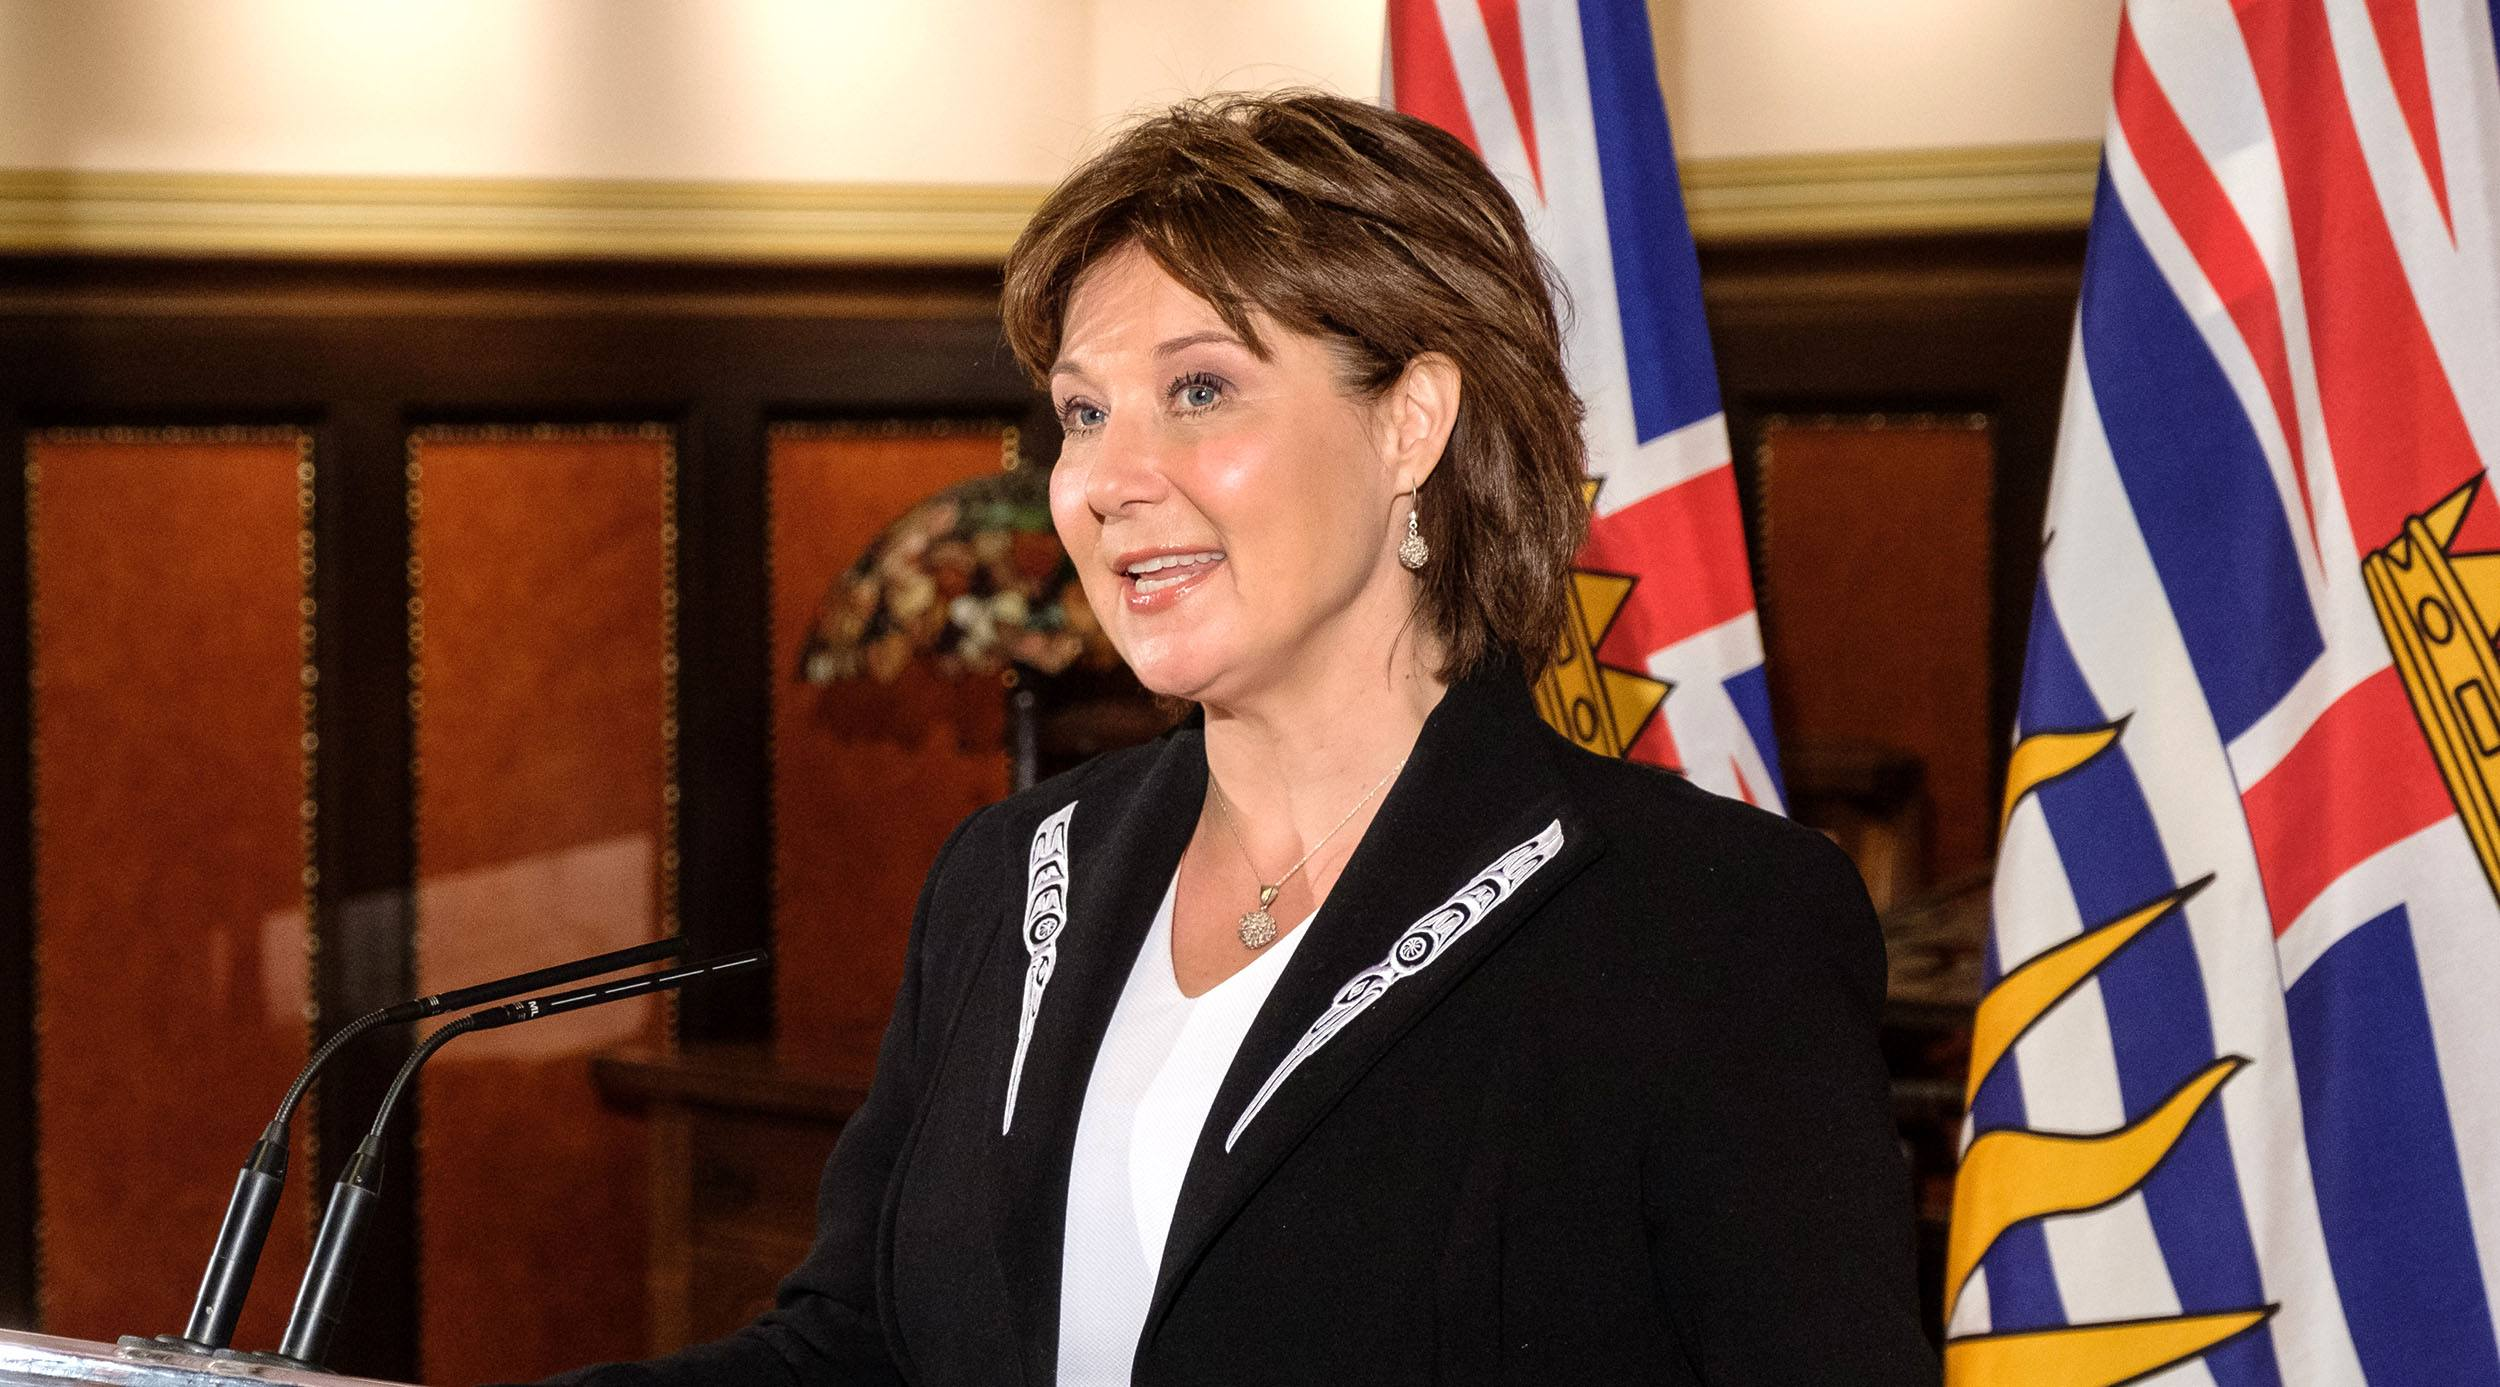 Bc premier christy clark 2 province of british columbia flickr